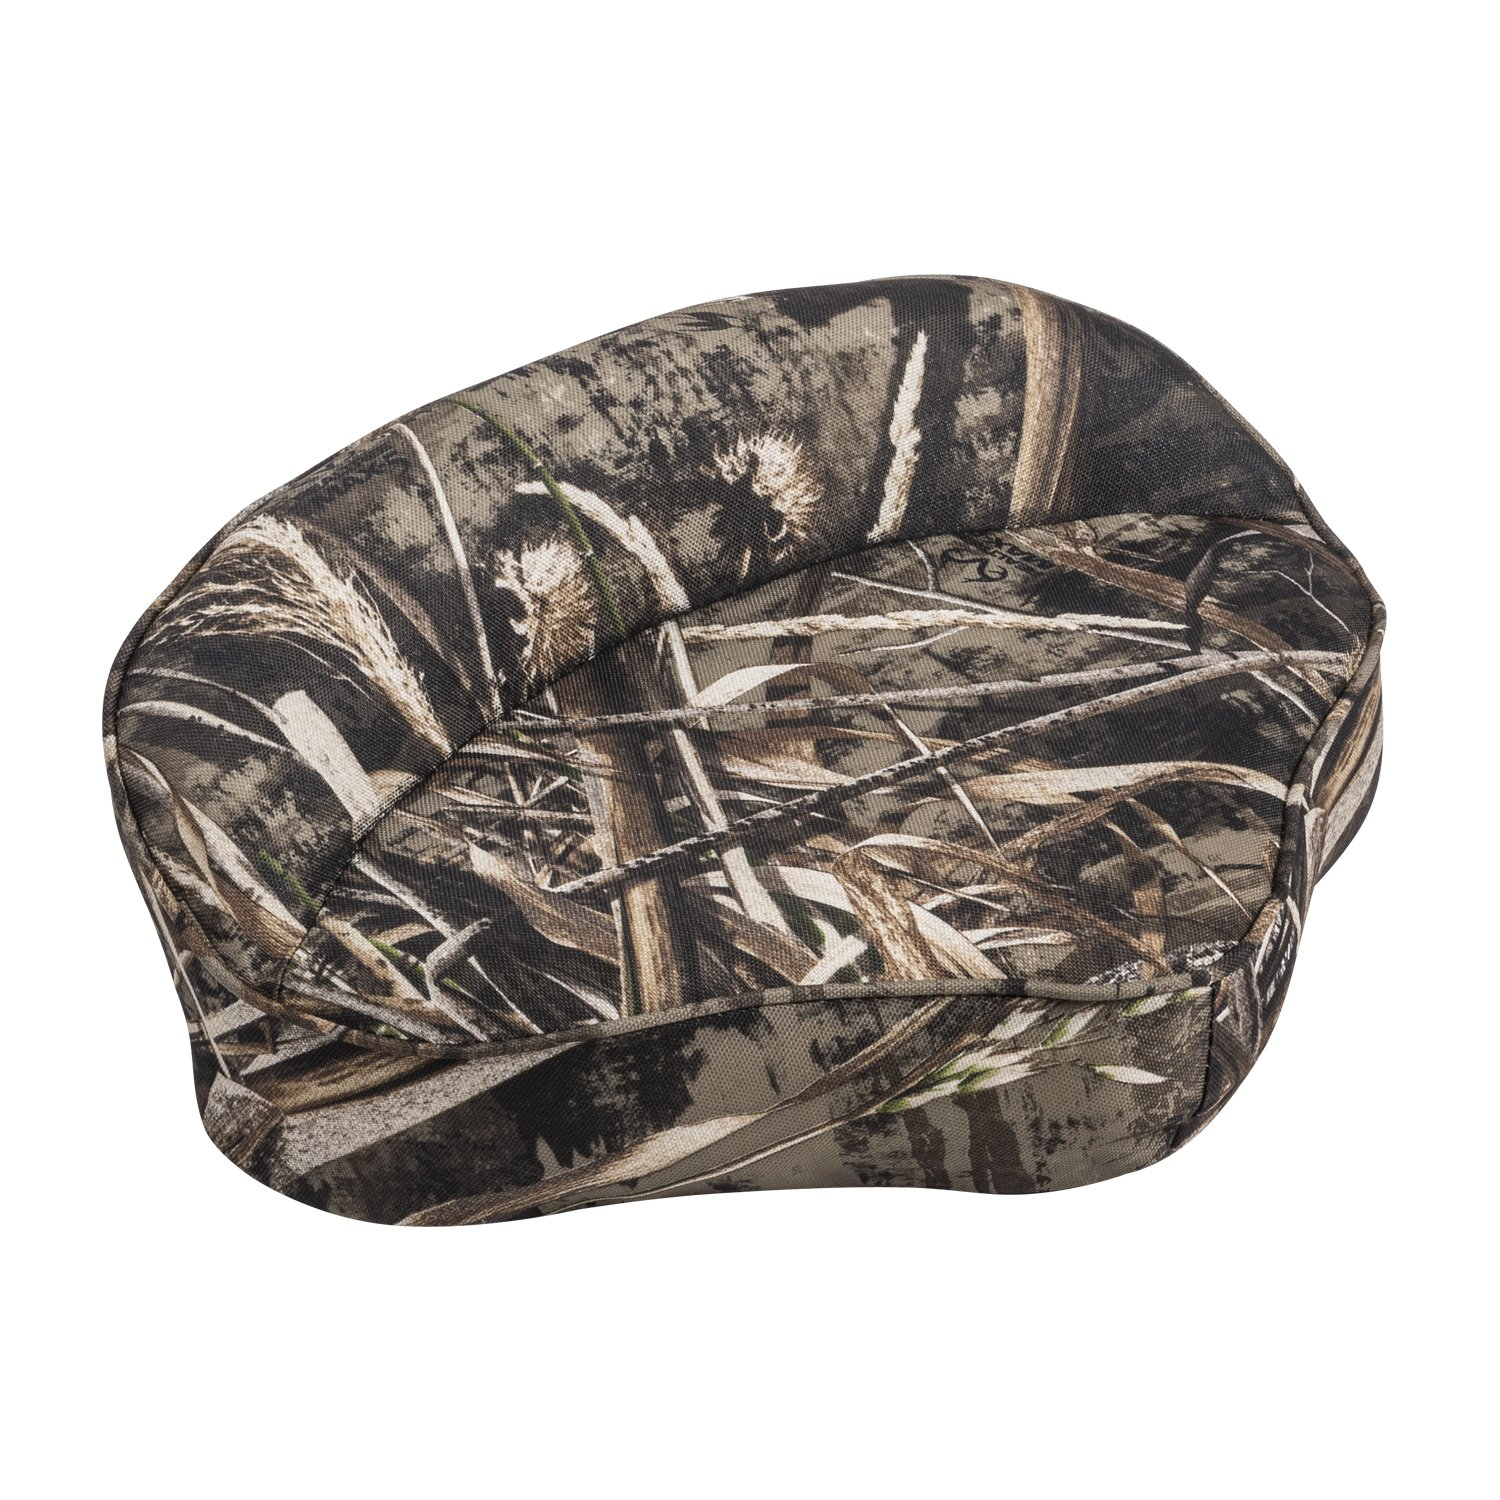 Wise Pro Casting Seat,Realtree Max 5 Camo by Wise (Image #1)